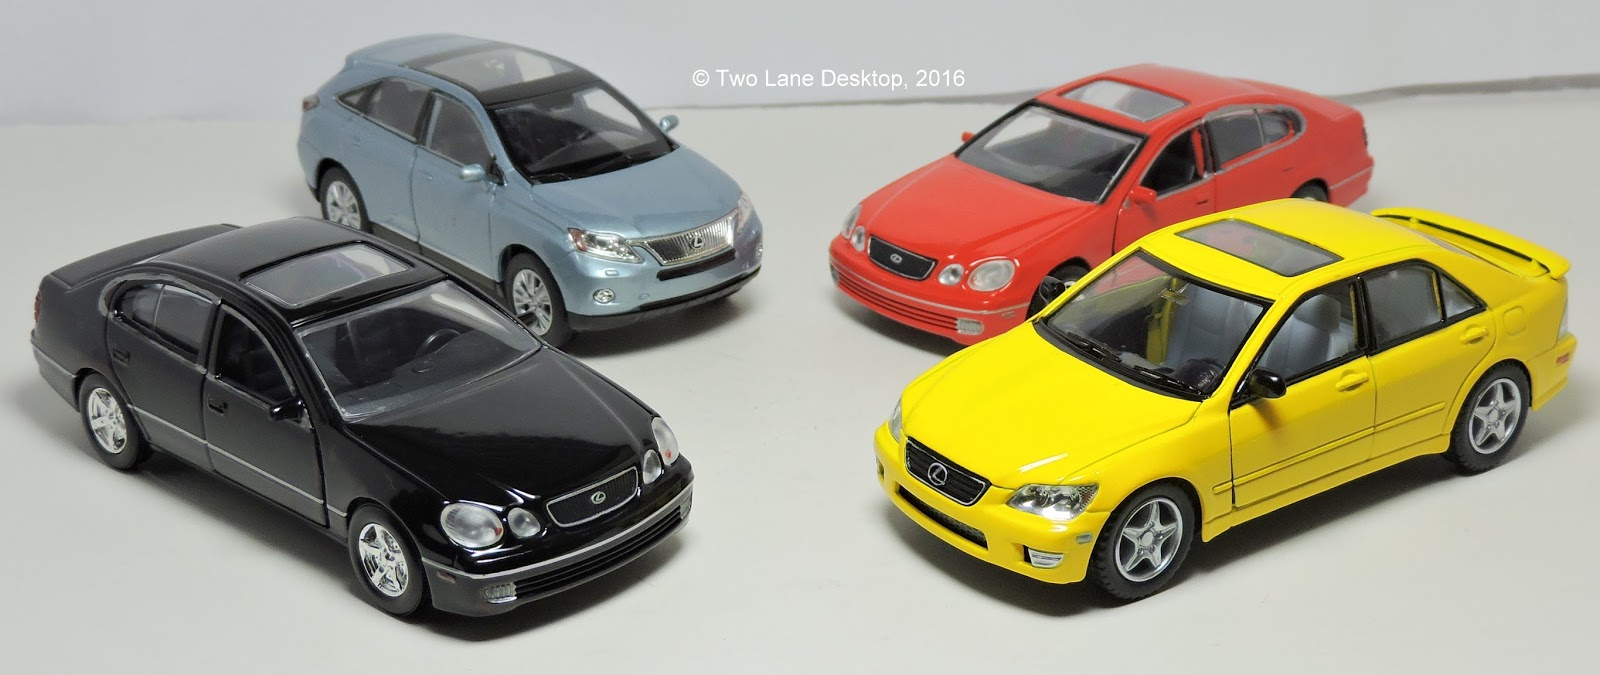 small resolution of in 1989 toyota set the luxury car market on fire with the new lexus brand aimed at challenging the best from germany while at the same time teaching them a